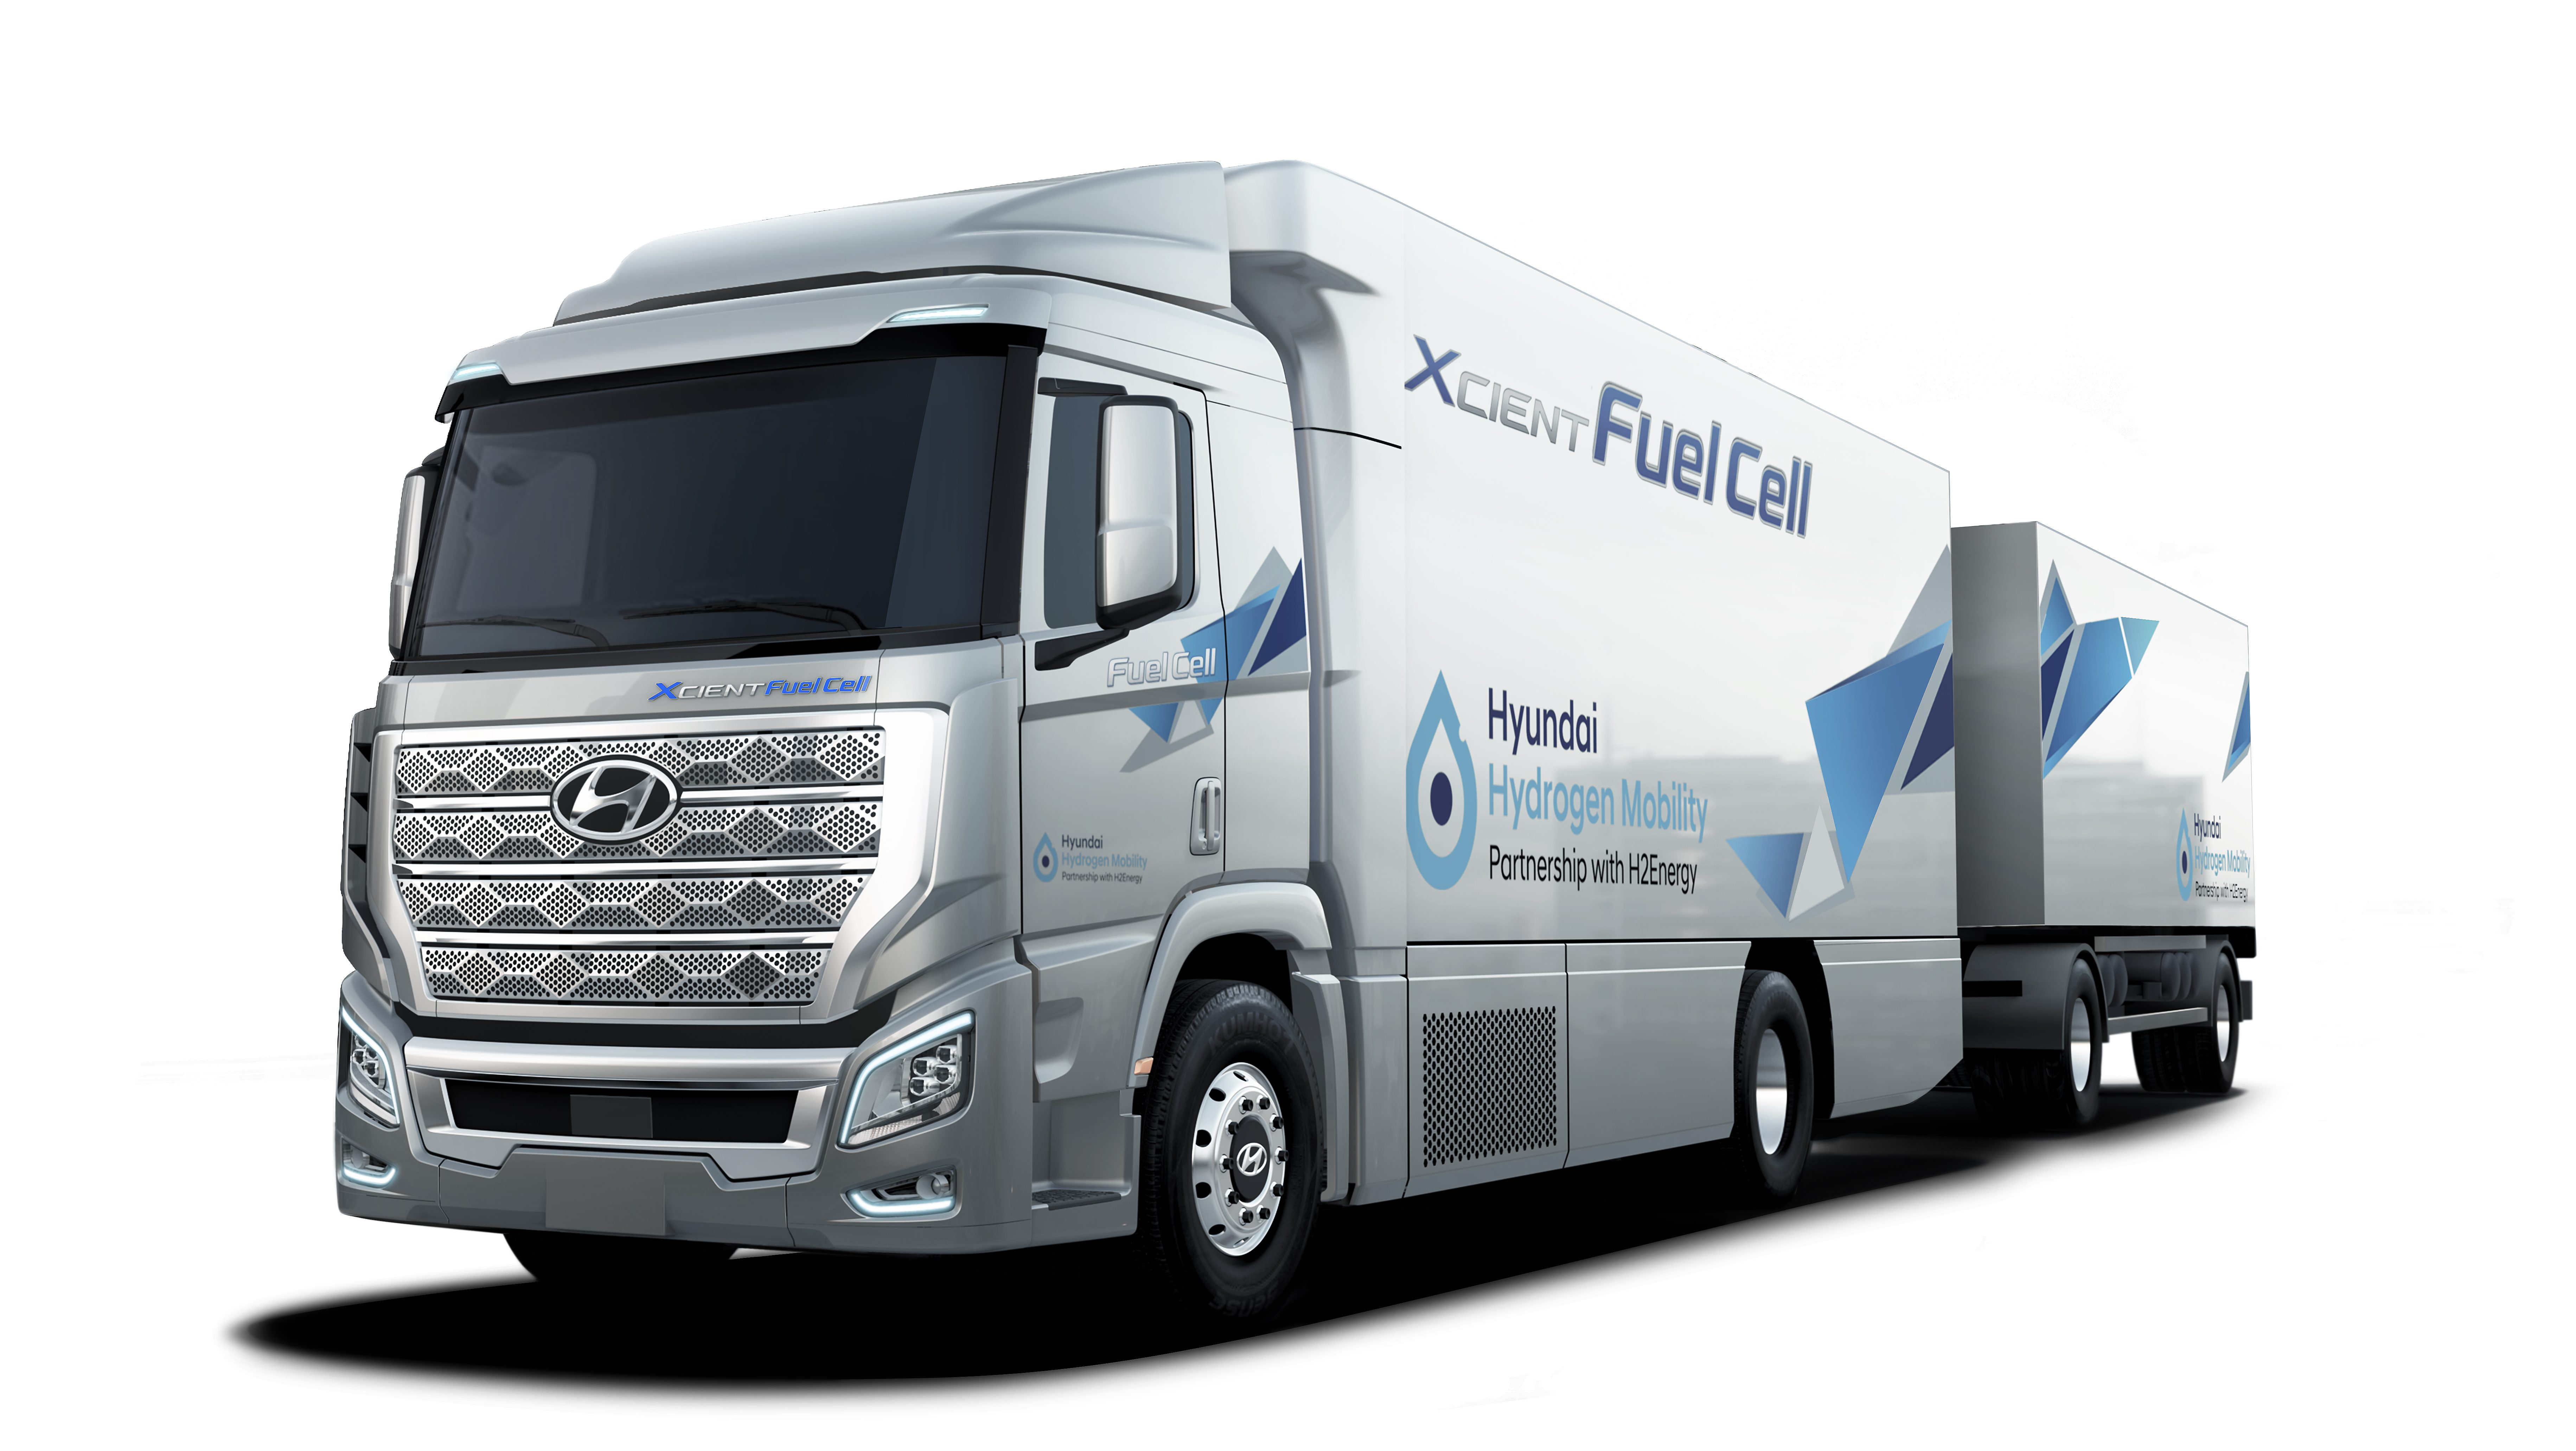 Green Hydrogen Allows Hyundai Hydrogen Mobility and Hydrospider to Connect Electricity with Mobility Sectors in Switzerland